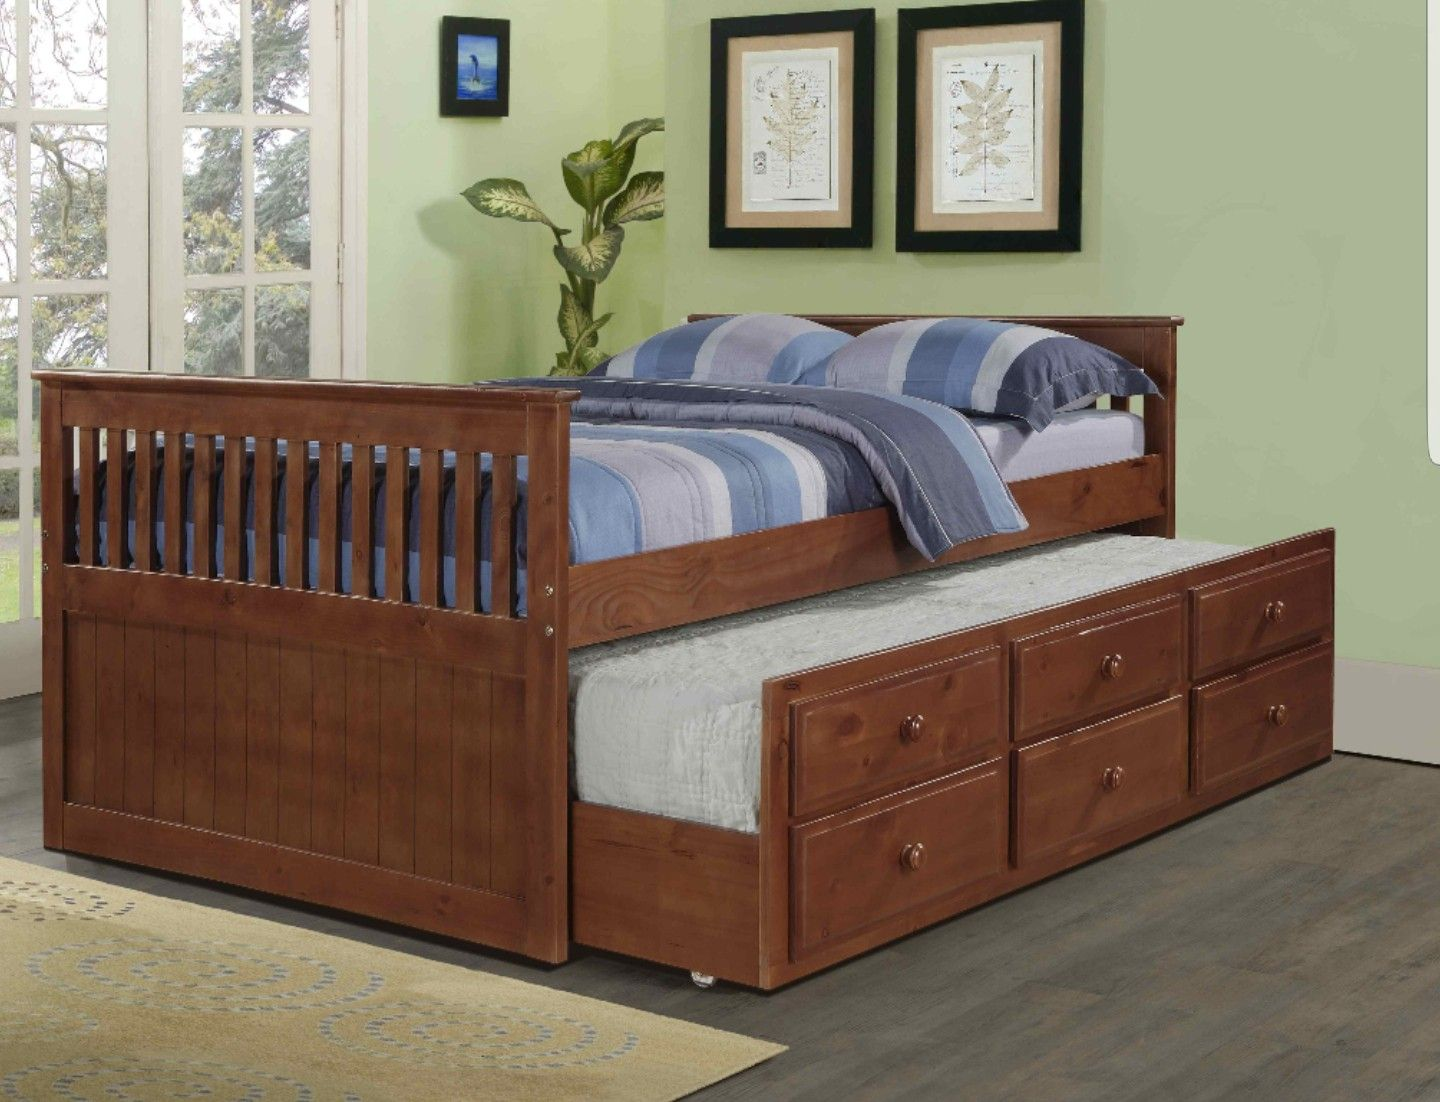 Pin By Chetana Karri On Home Twin Trundle Bed Captains Bed